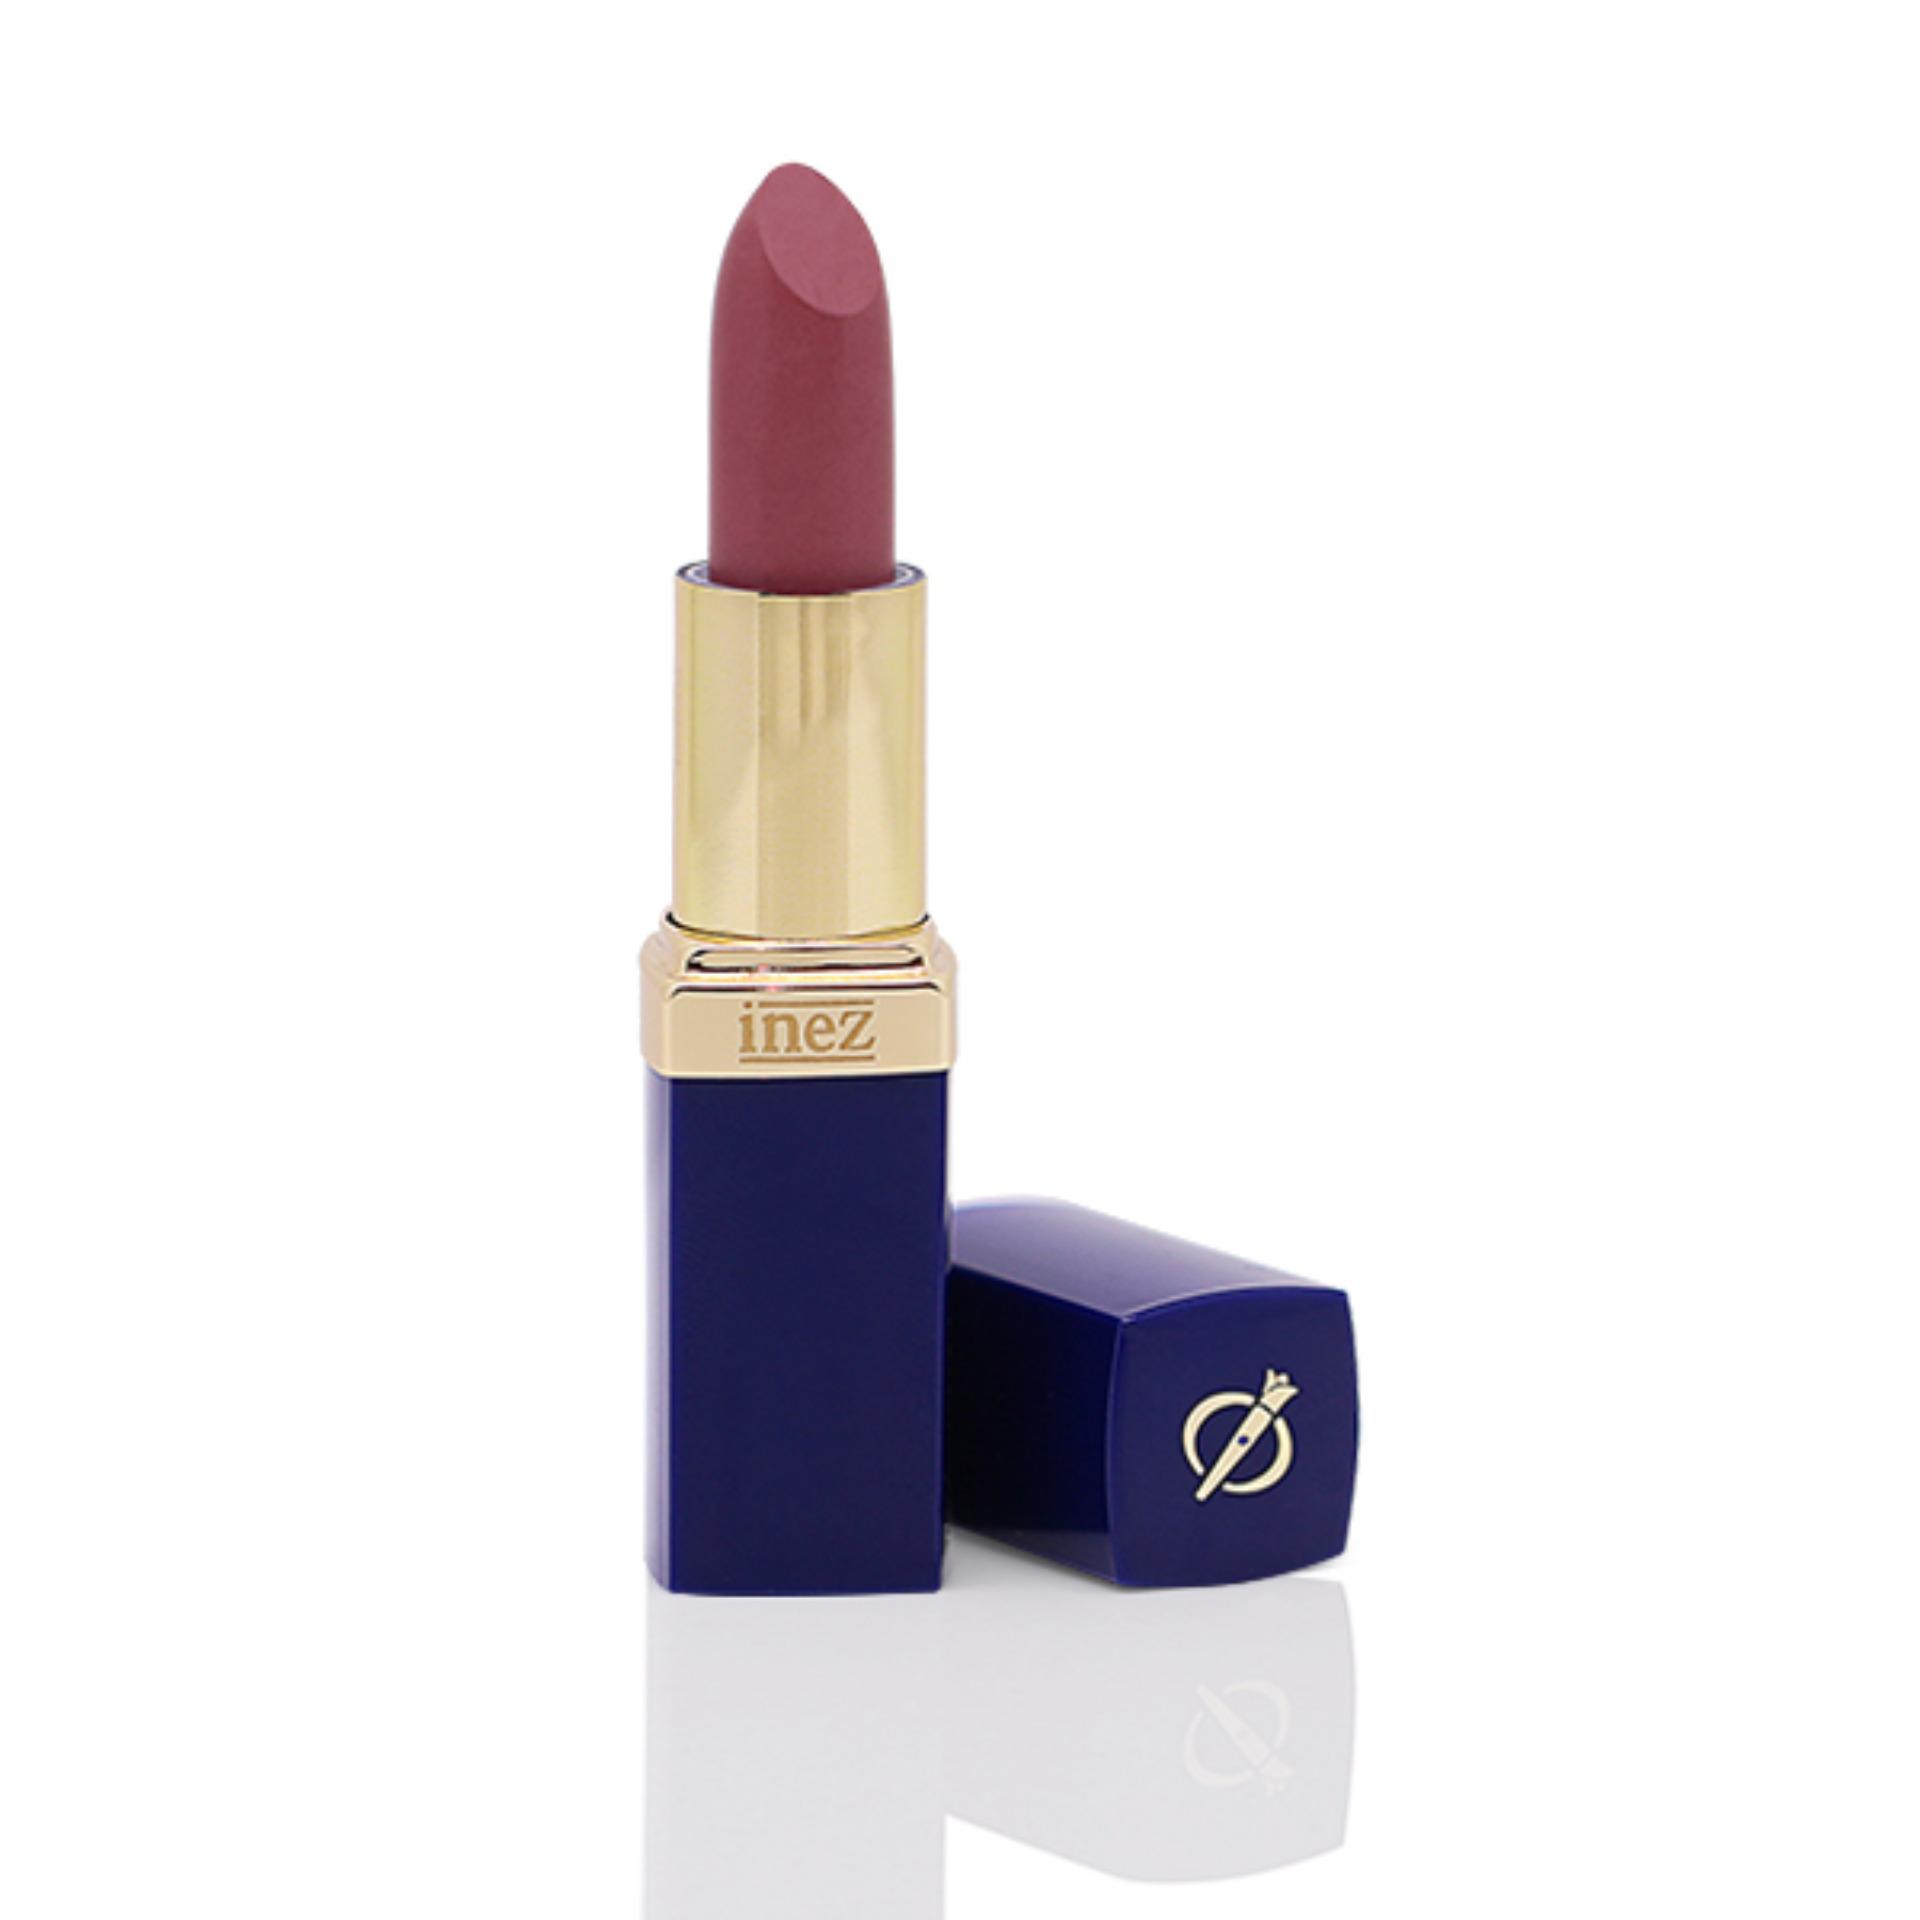 Inez Colour Contour Plus Lipstick - Antique Rose